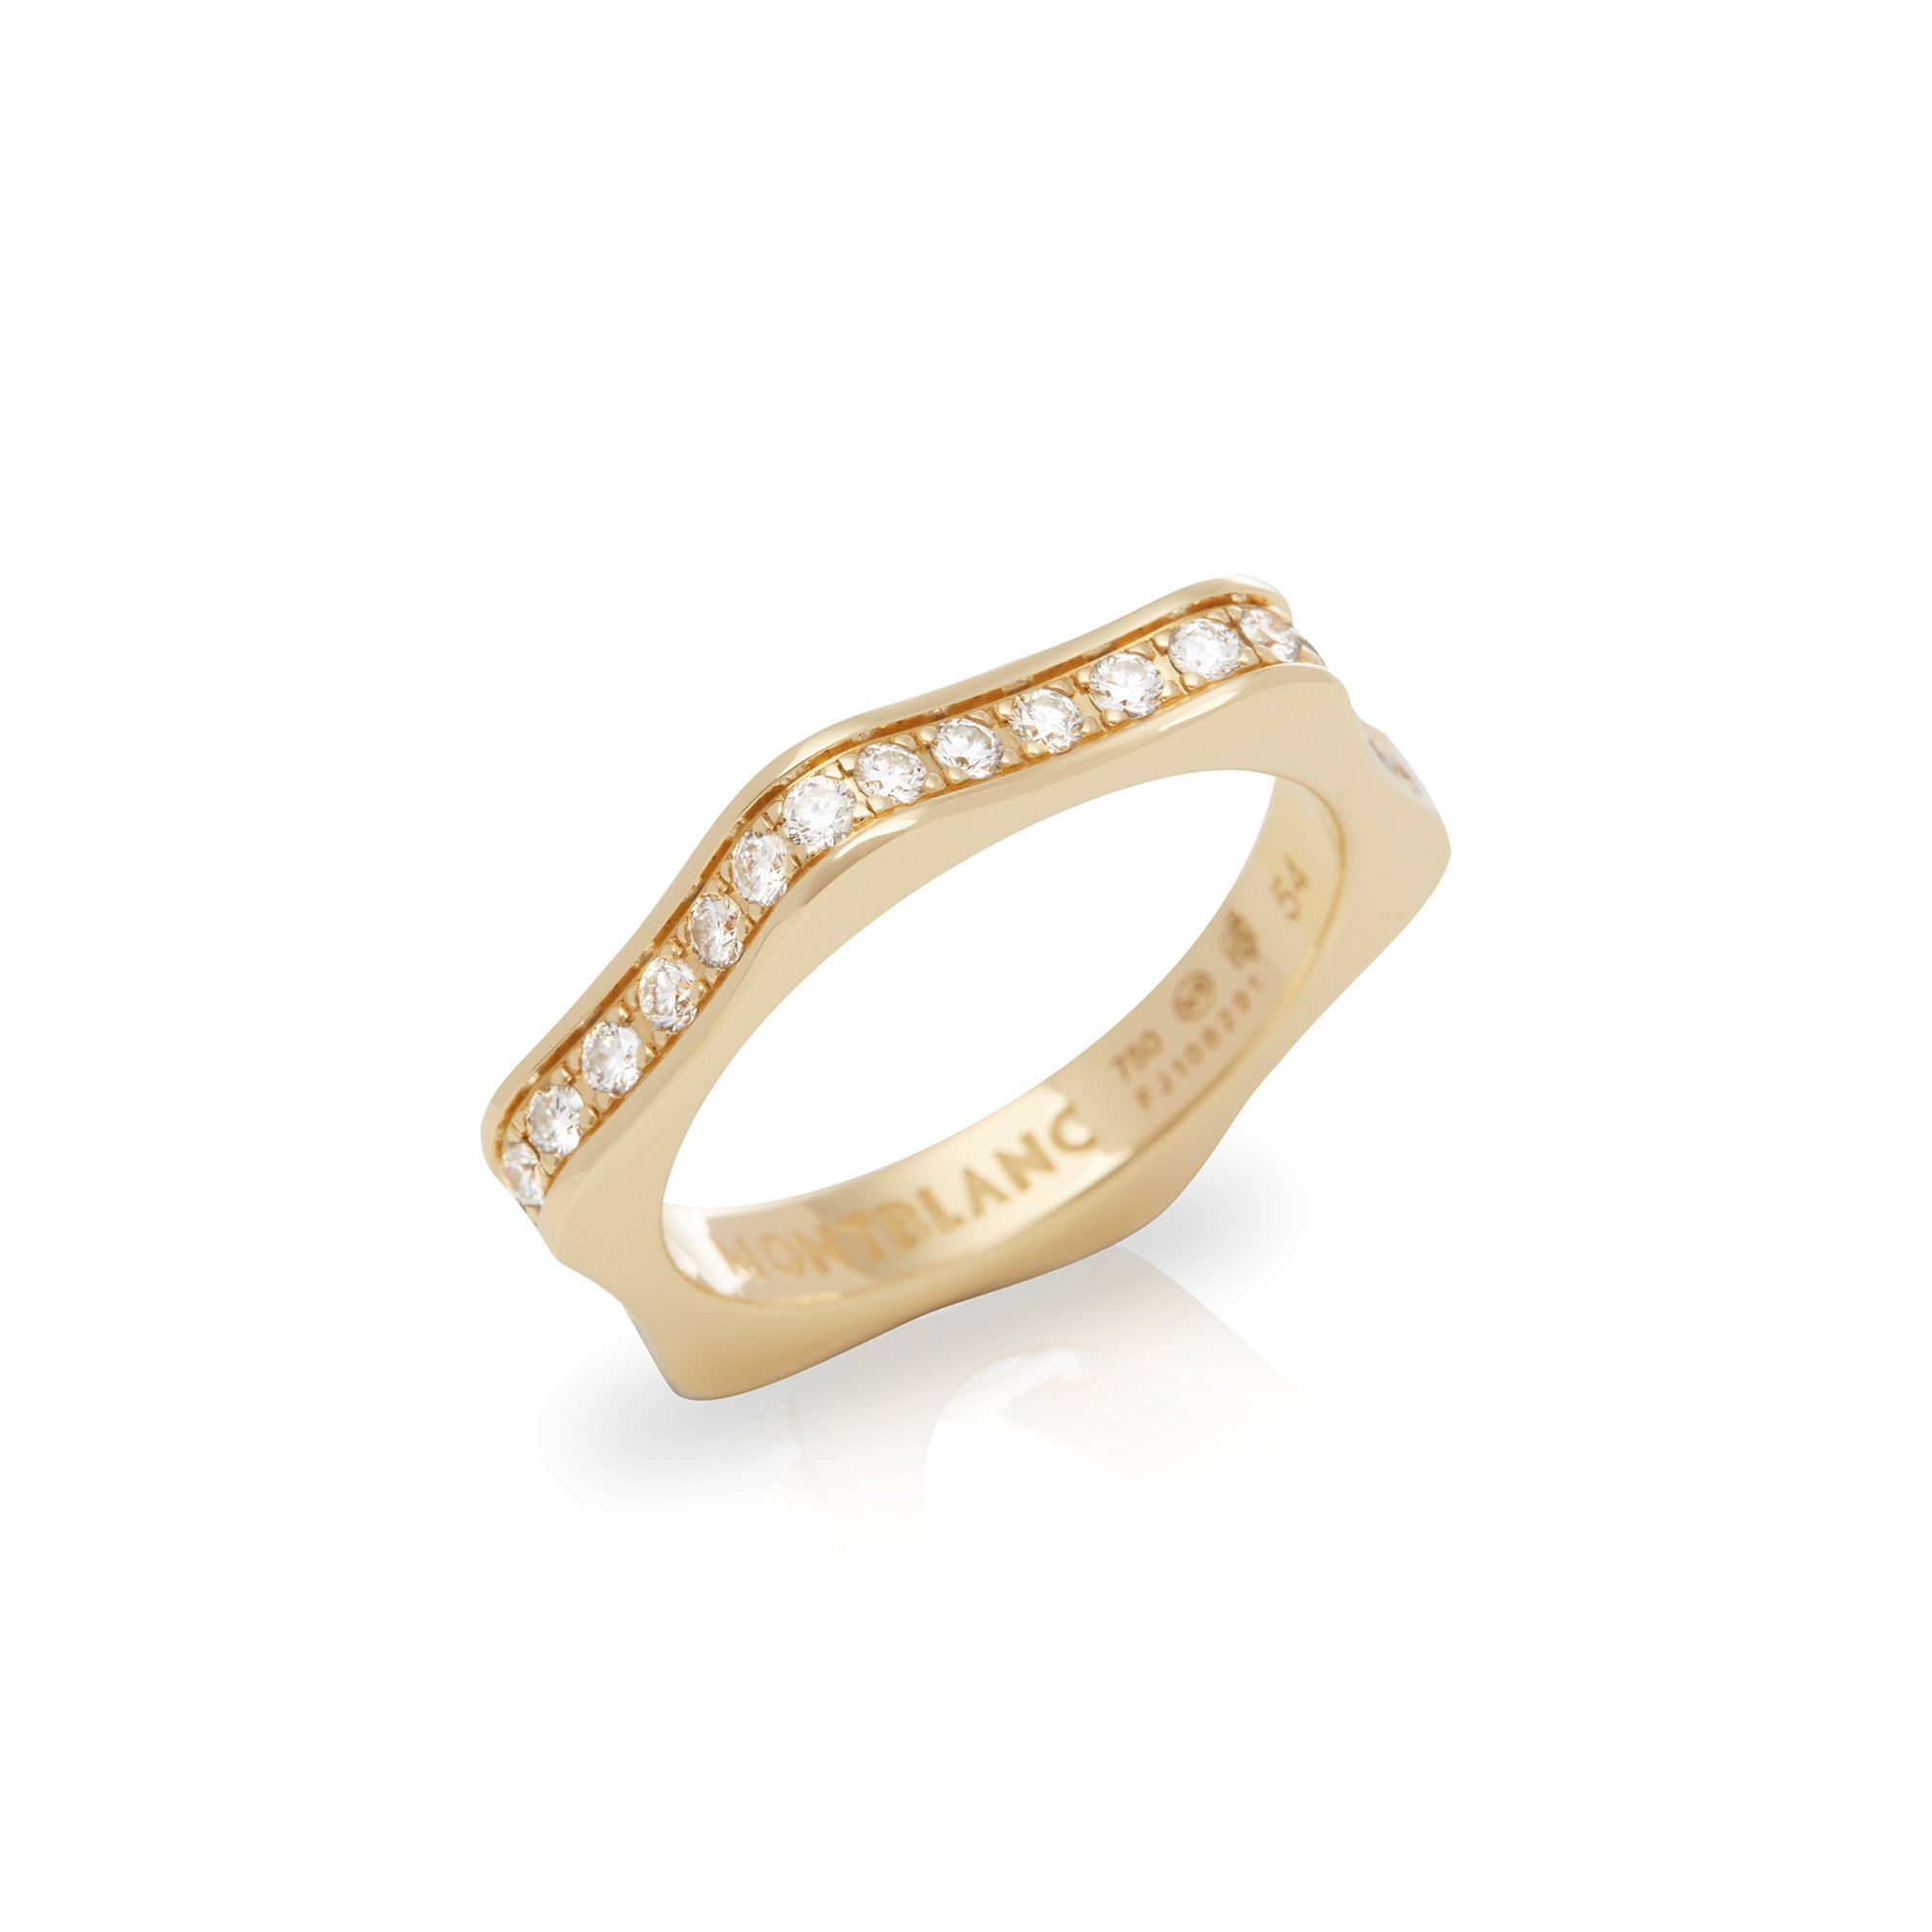 Montblanc 18k Yellow Gold 4810 Full Diamond Eternity Ring